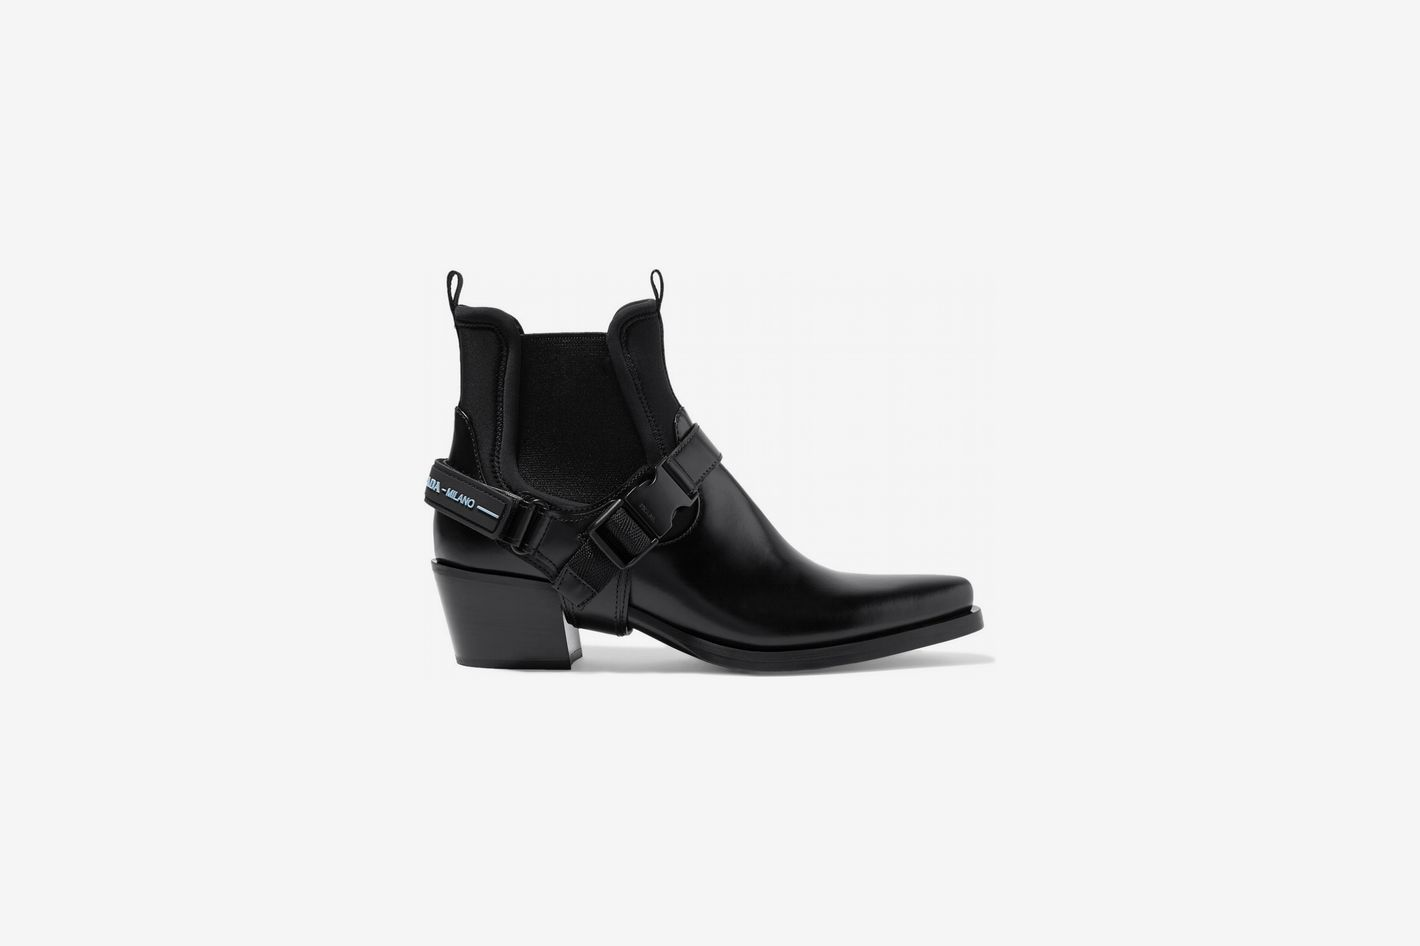 0b248395354ad Prada Leather and Neoprene Ankle Boots